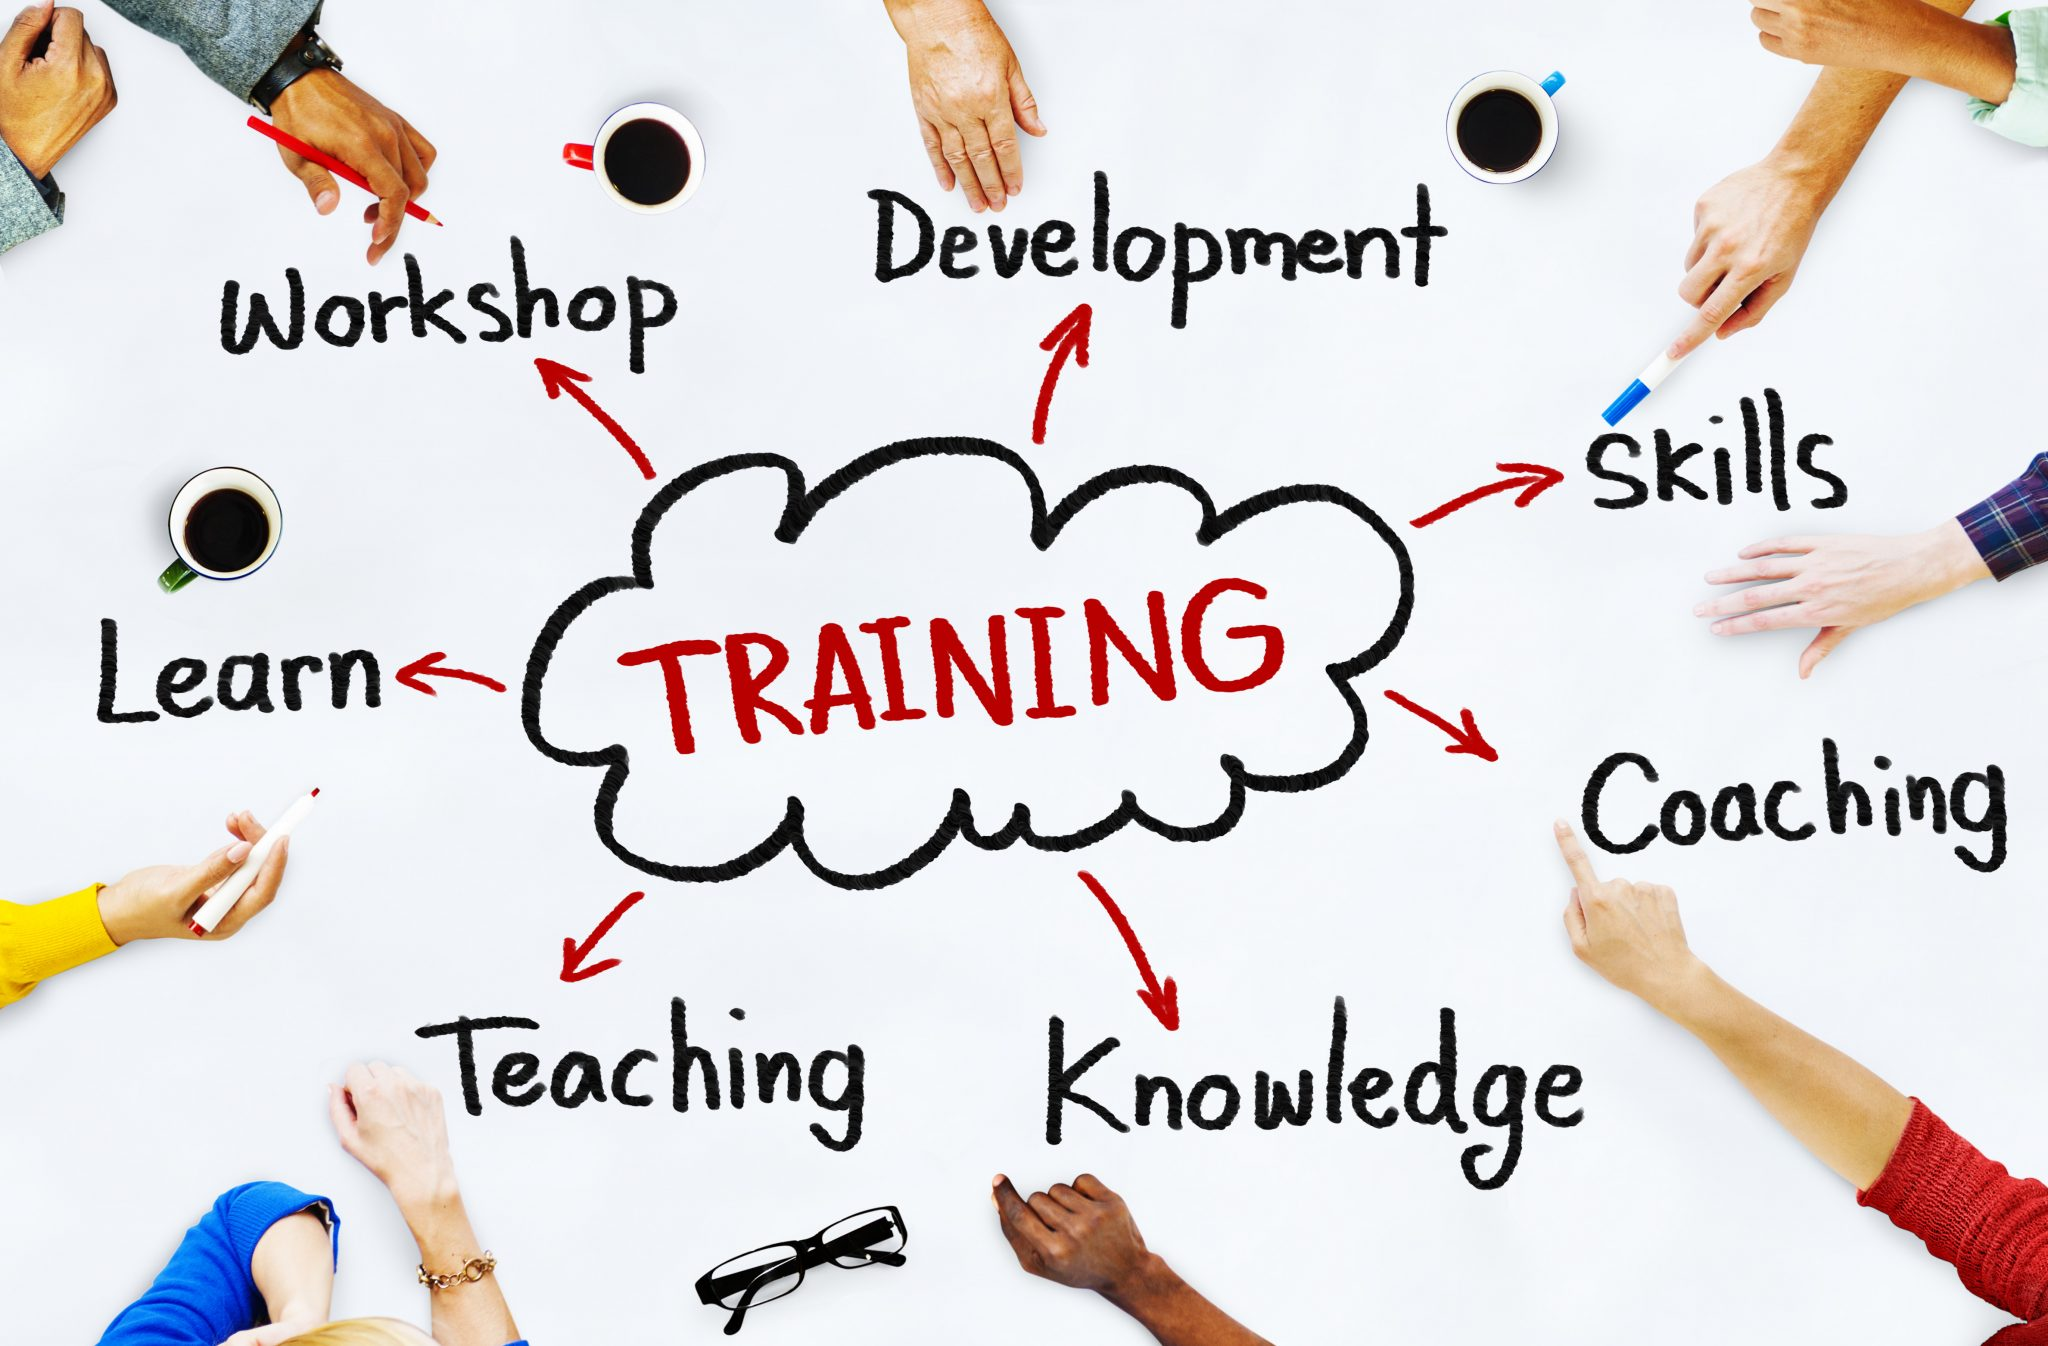 benefits of training in organisations From enhanced performance and increased job satisfaction, to strengthened problem-solving skills and alleviated stress, and ultimately to customer satisfaction - it's almost impossible to count the numerous ways that employee training benefits the entire organization.